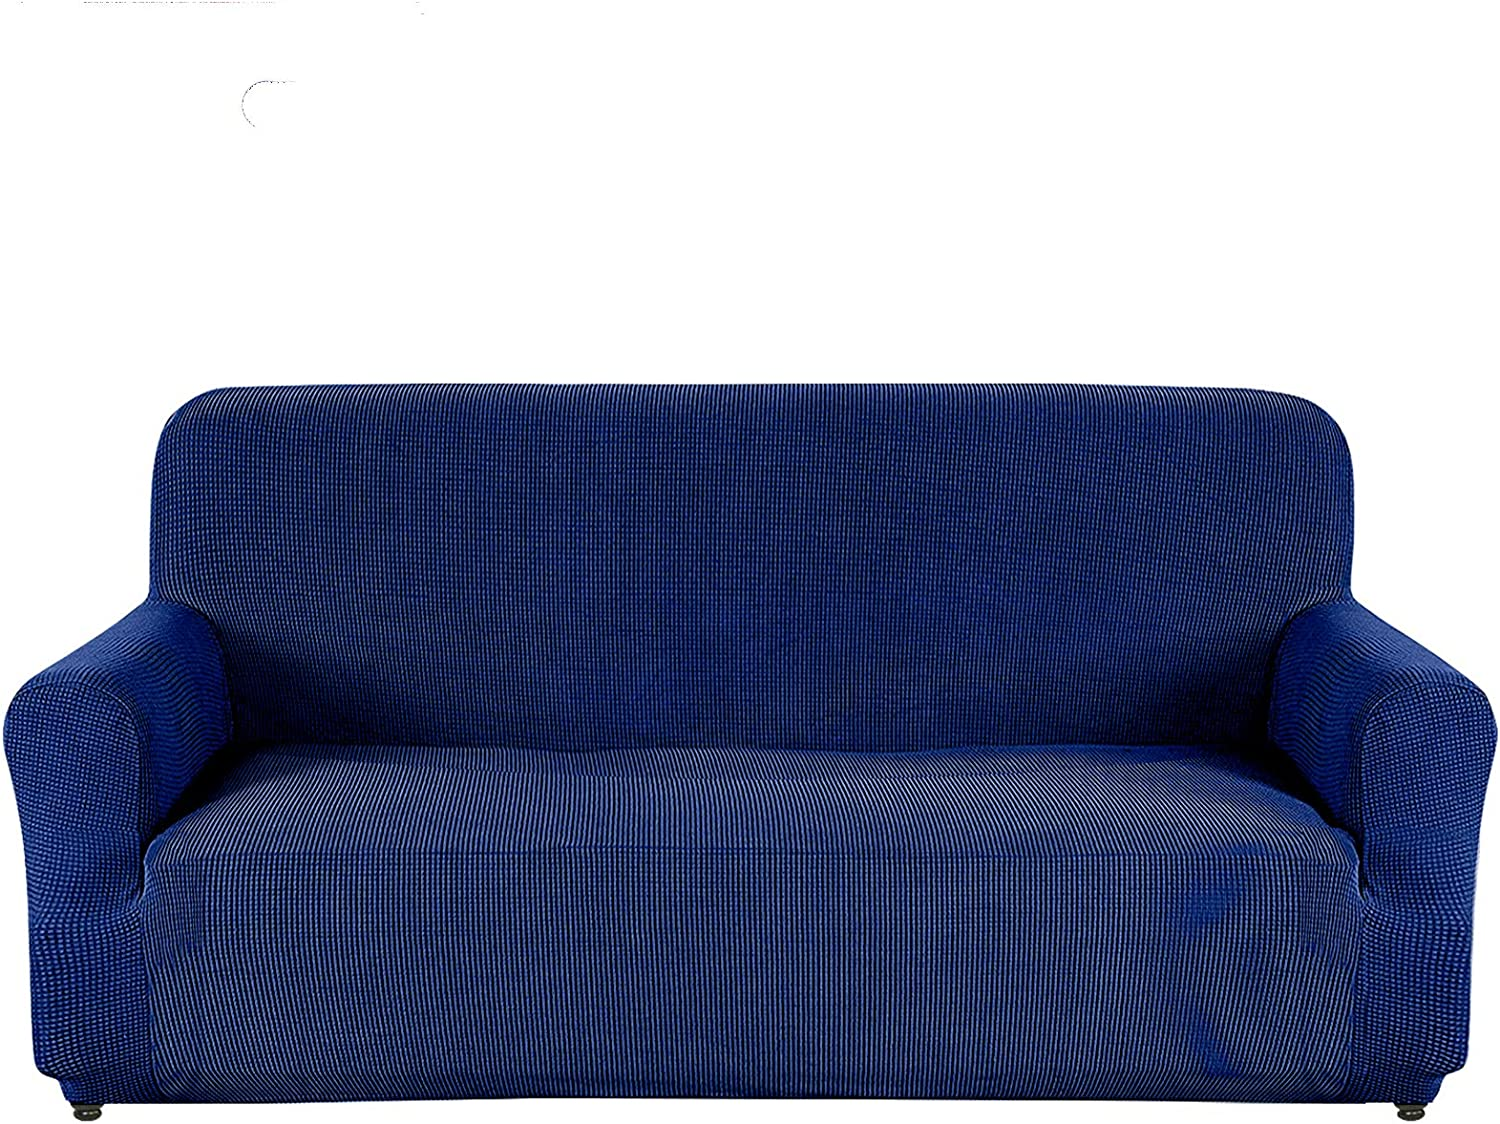 AUJOY Loveseat Cover Stretch 1-Piece Couch Slipcover for 2 Cushion Couch Jacquard Spandex Fabric Sofa Furniture Protector with Anti-Slip Foams (Loveseat, Navy Blue)